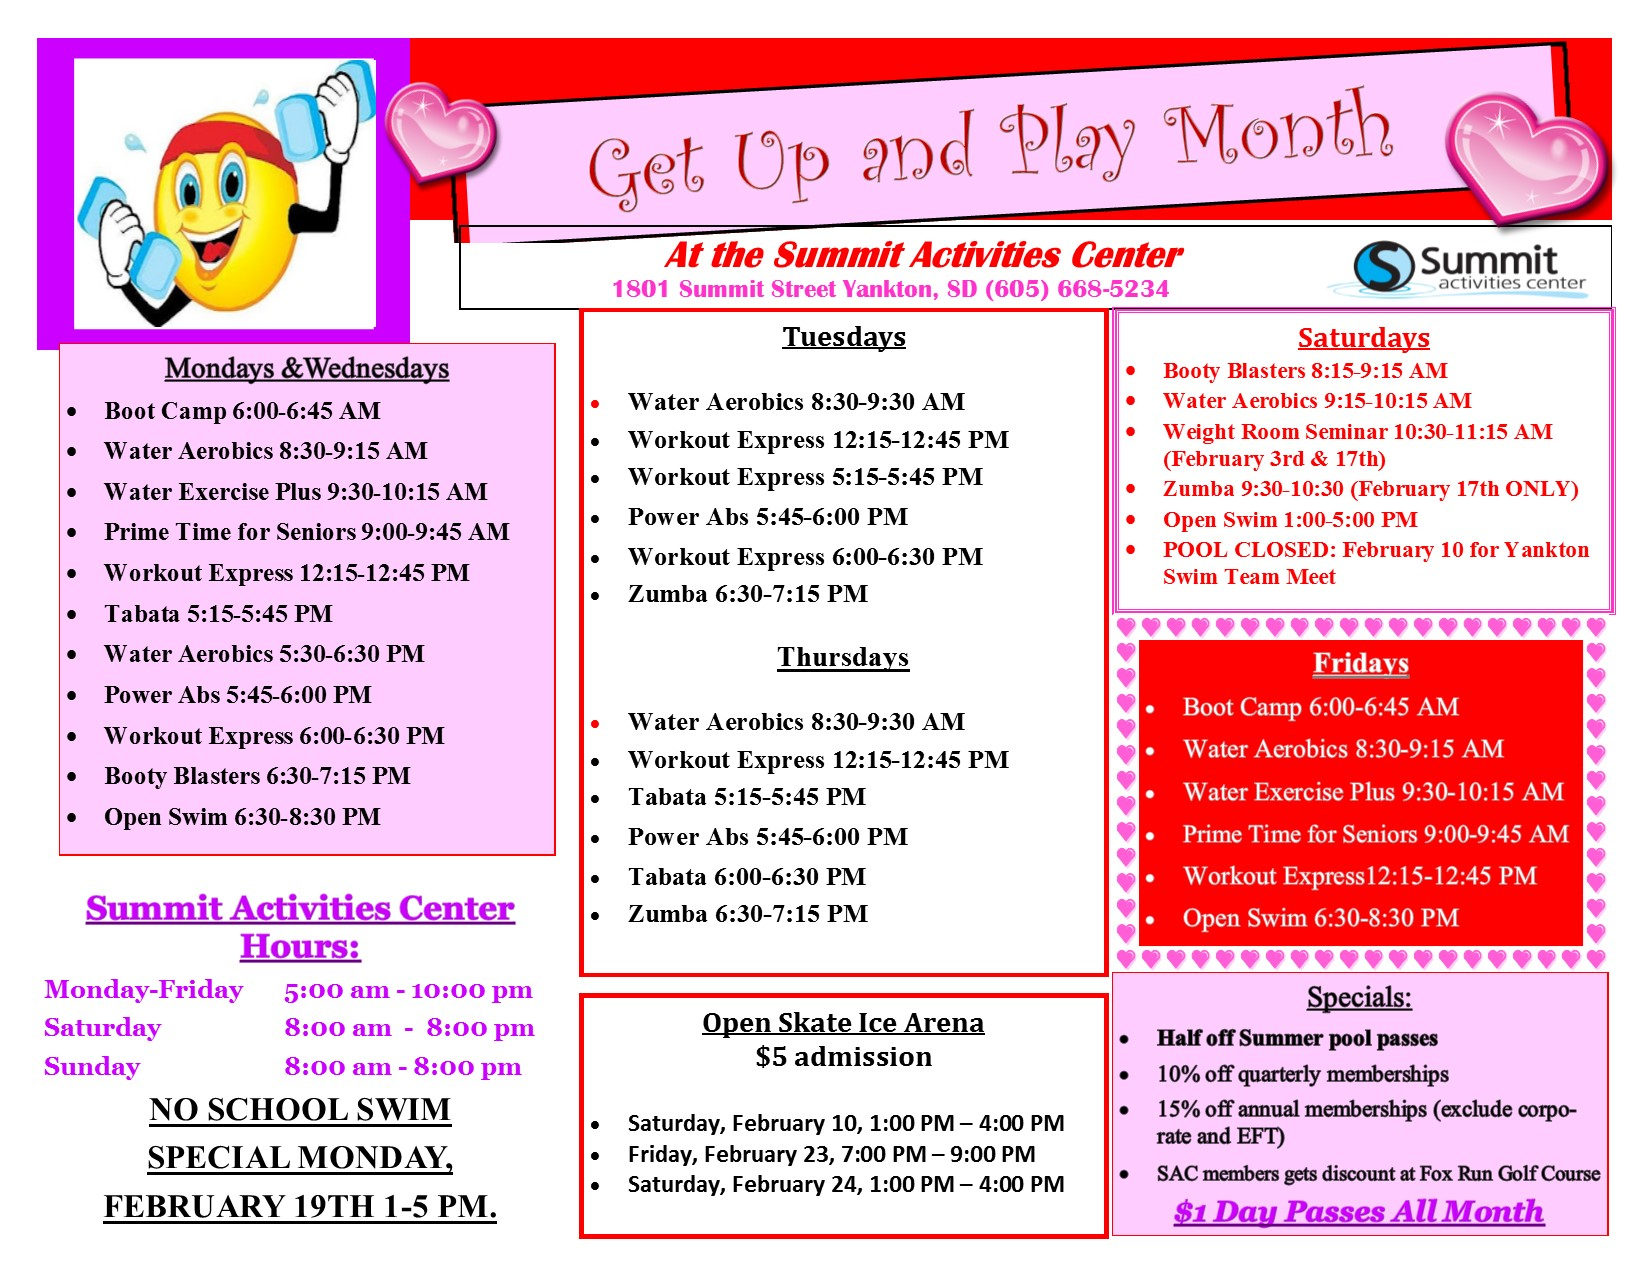 Get Up and Play Month 2018